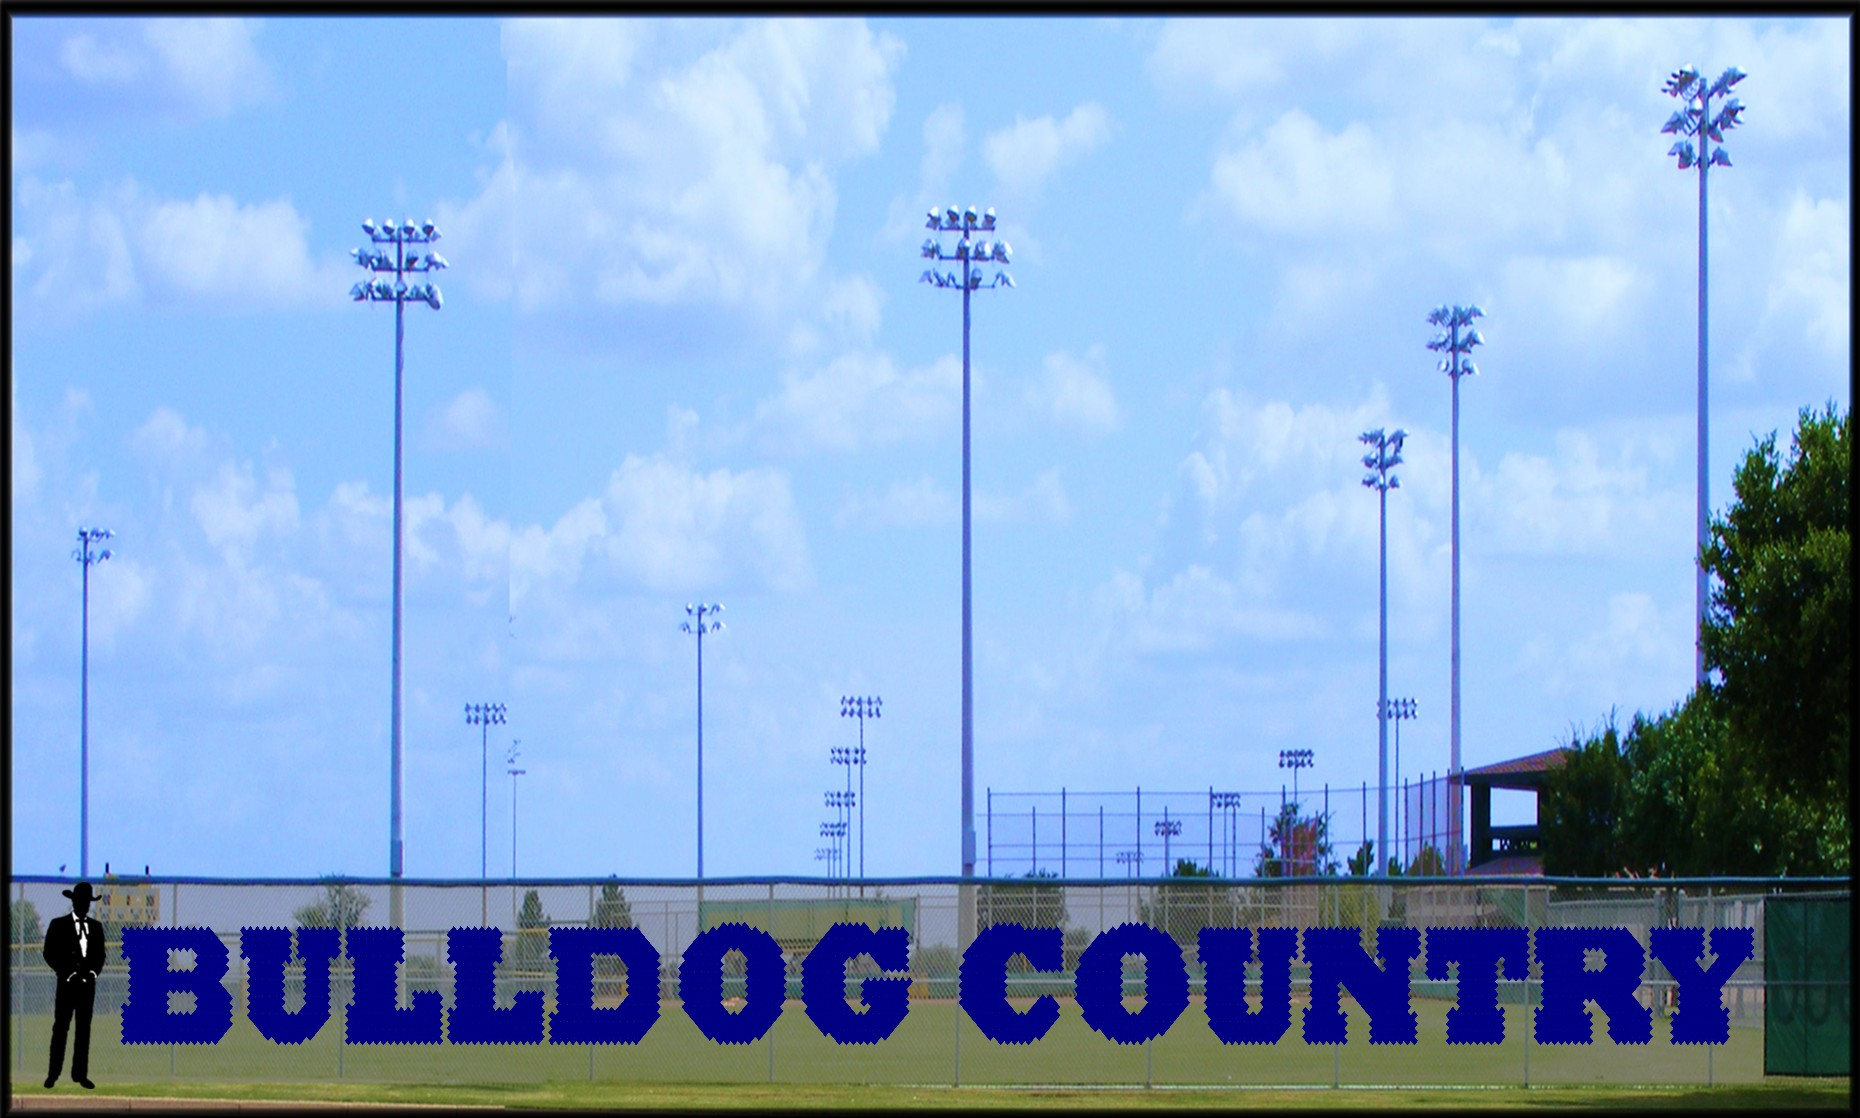 4' Bulldog Country